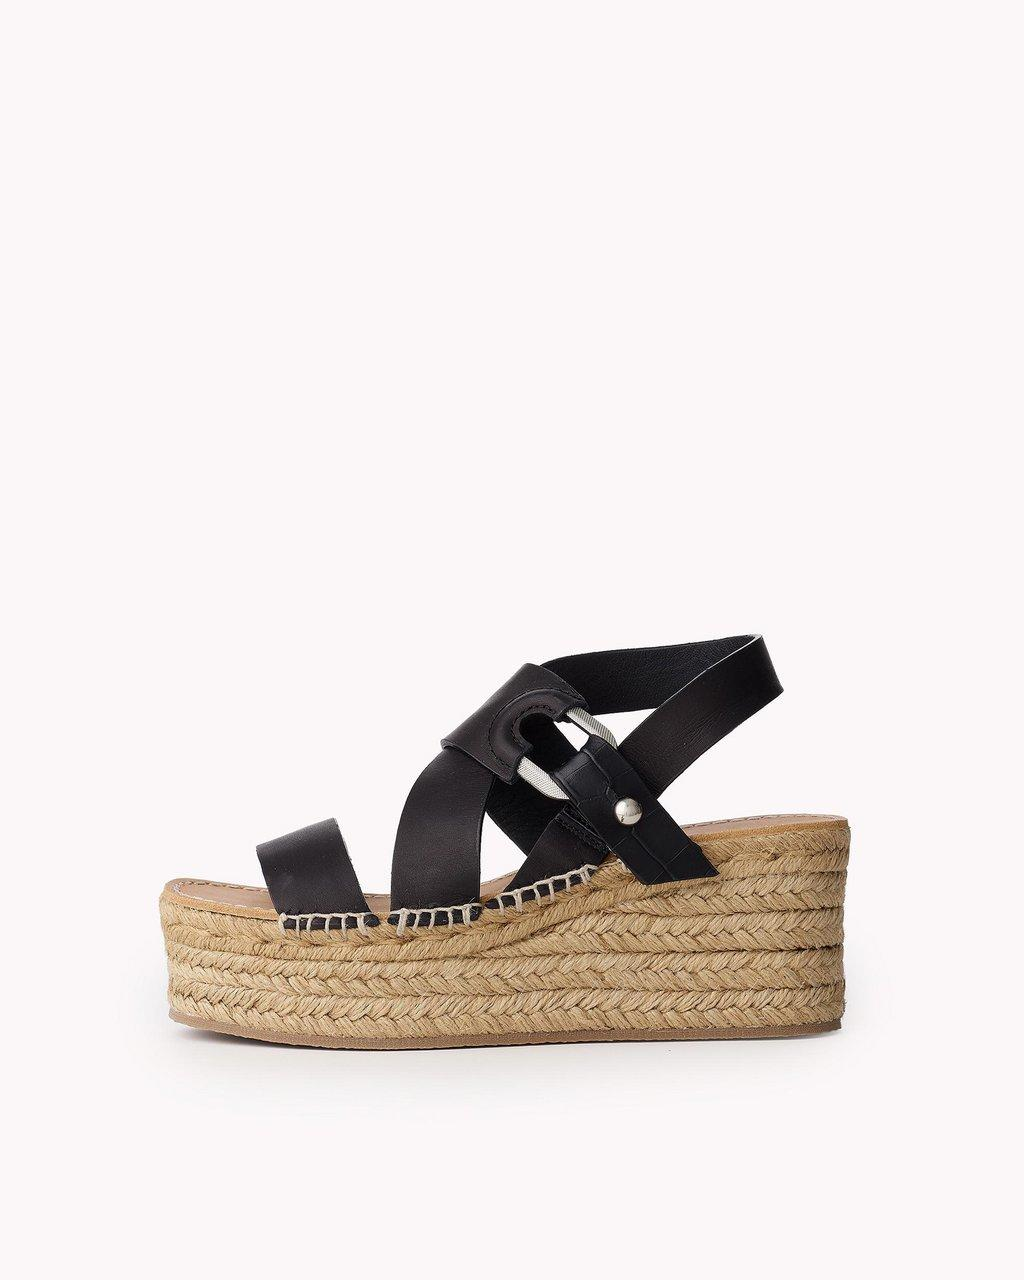 August Espadrille - Leather